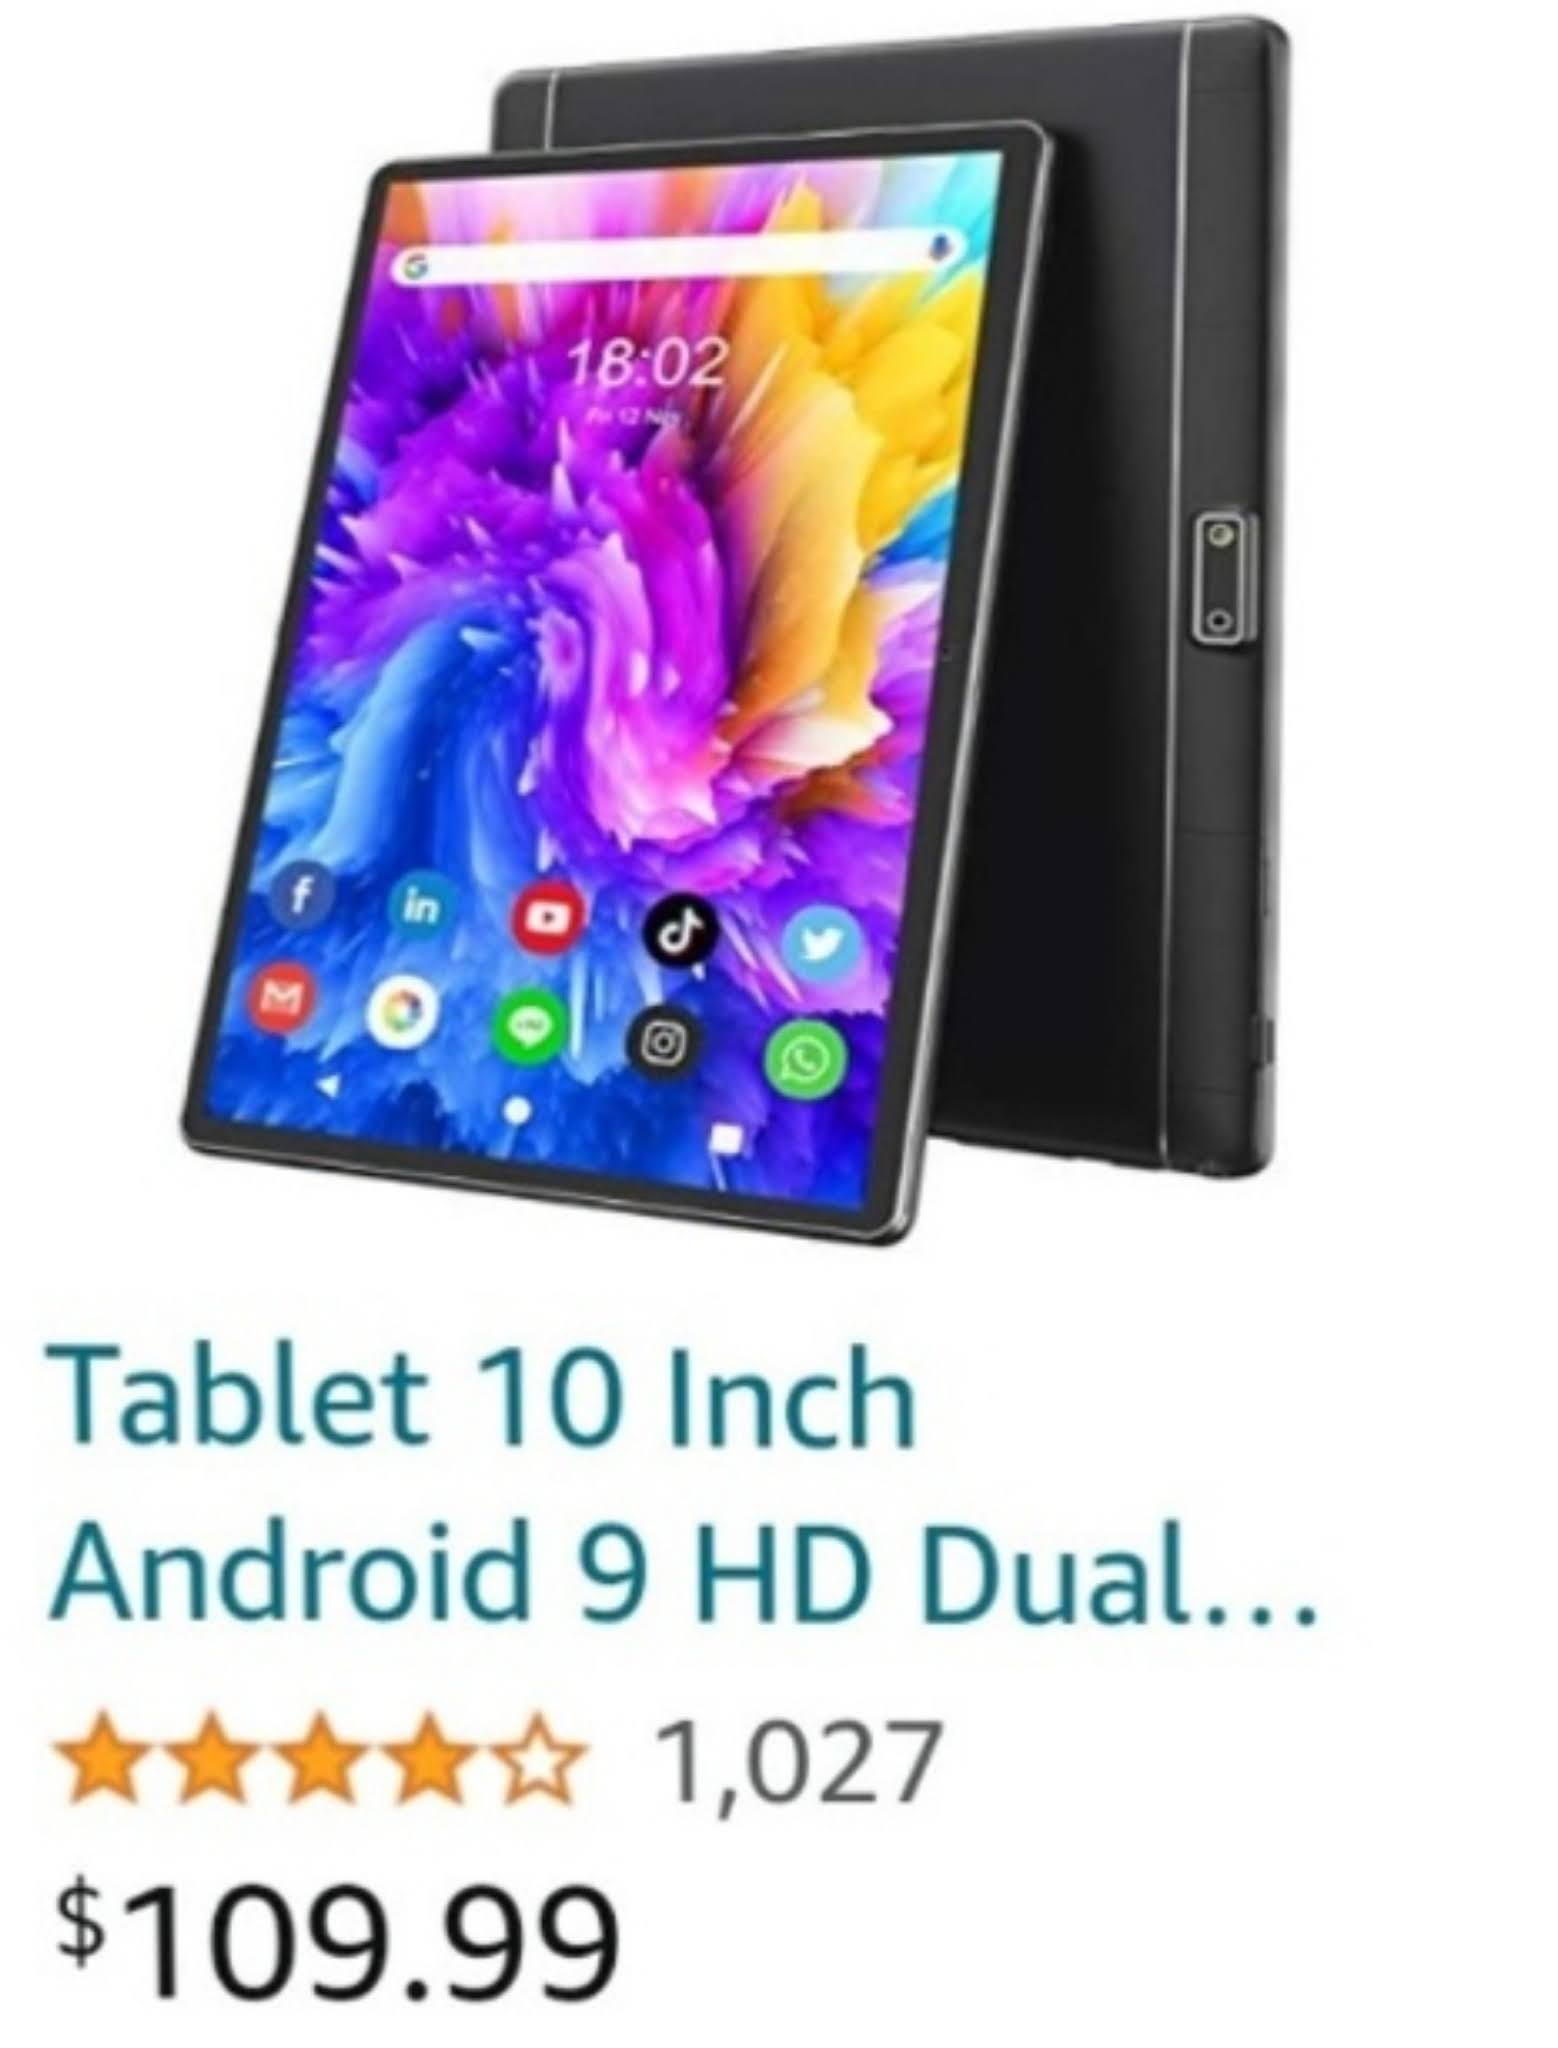 AOGE Tablet 10 inch android 9 hd dual